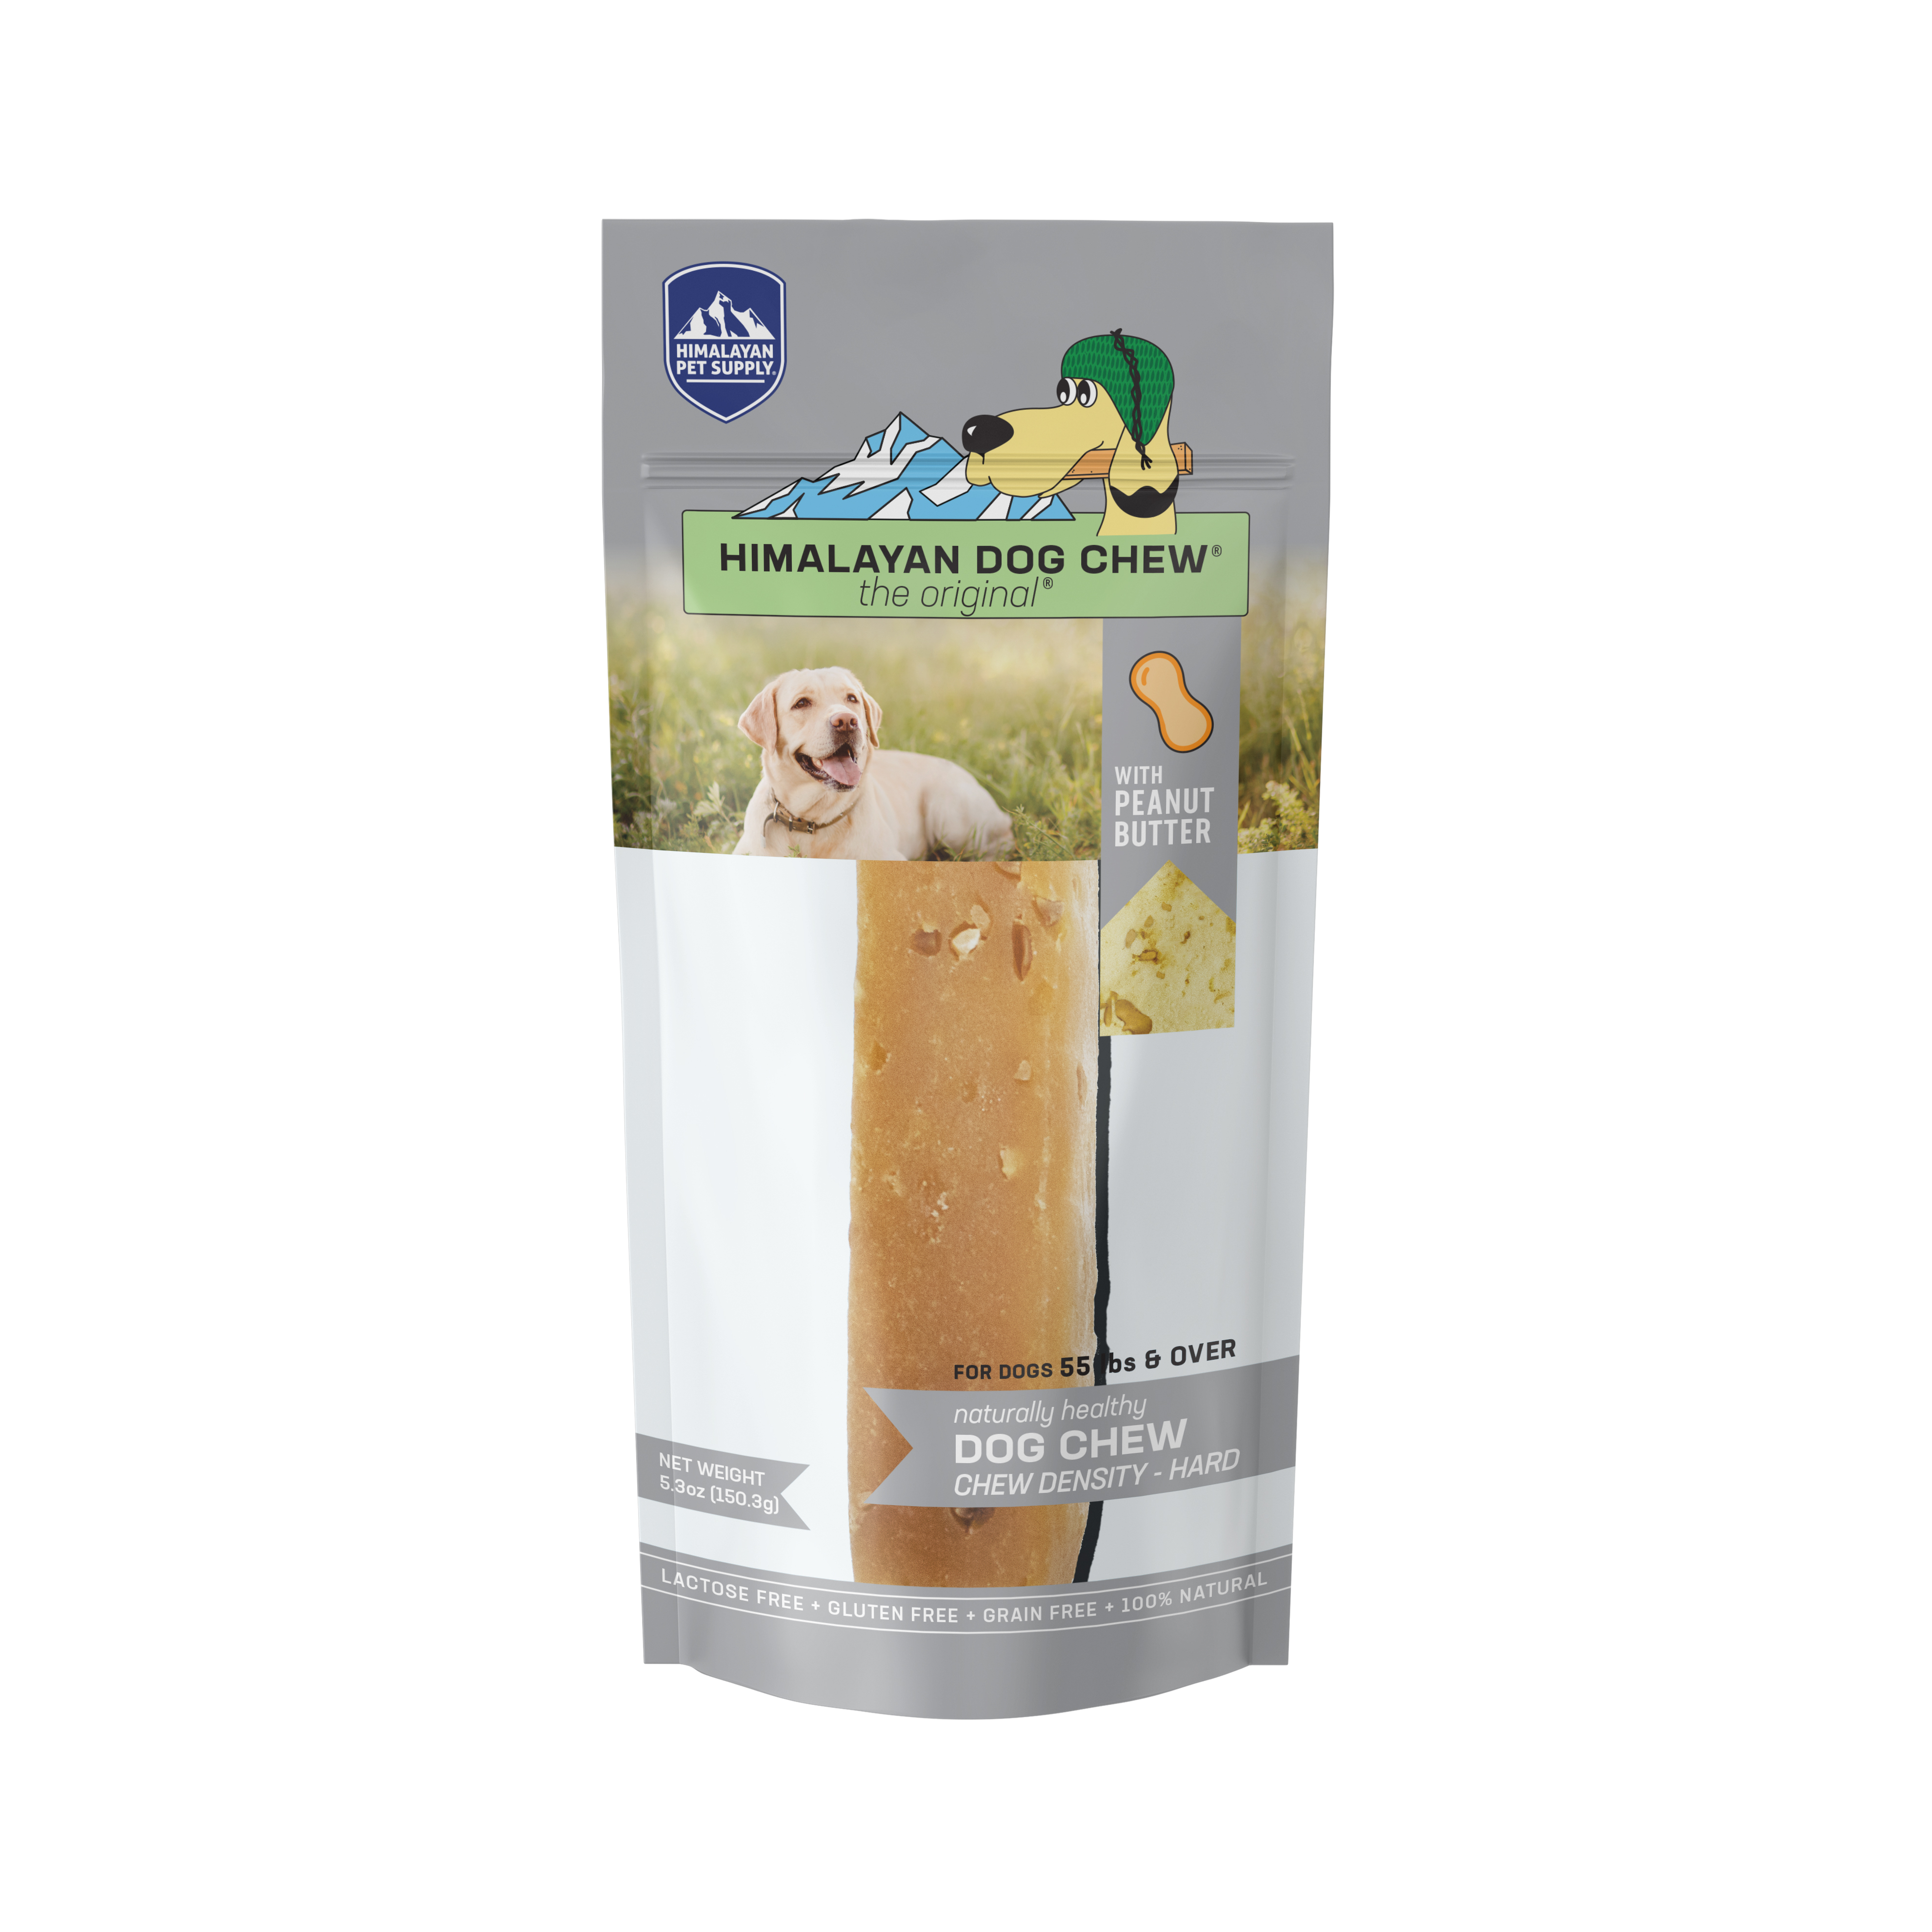 Himalayan Dog Chew, Peanut Butter Flavor, X-Large